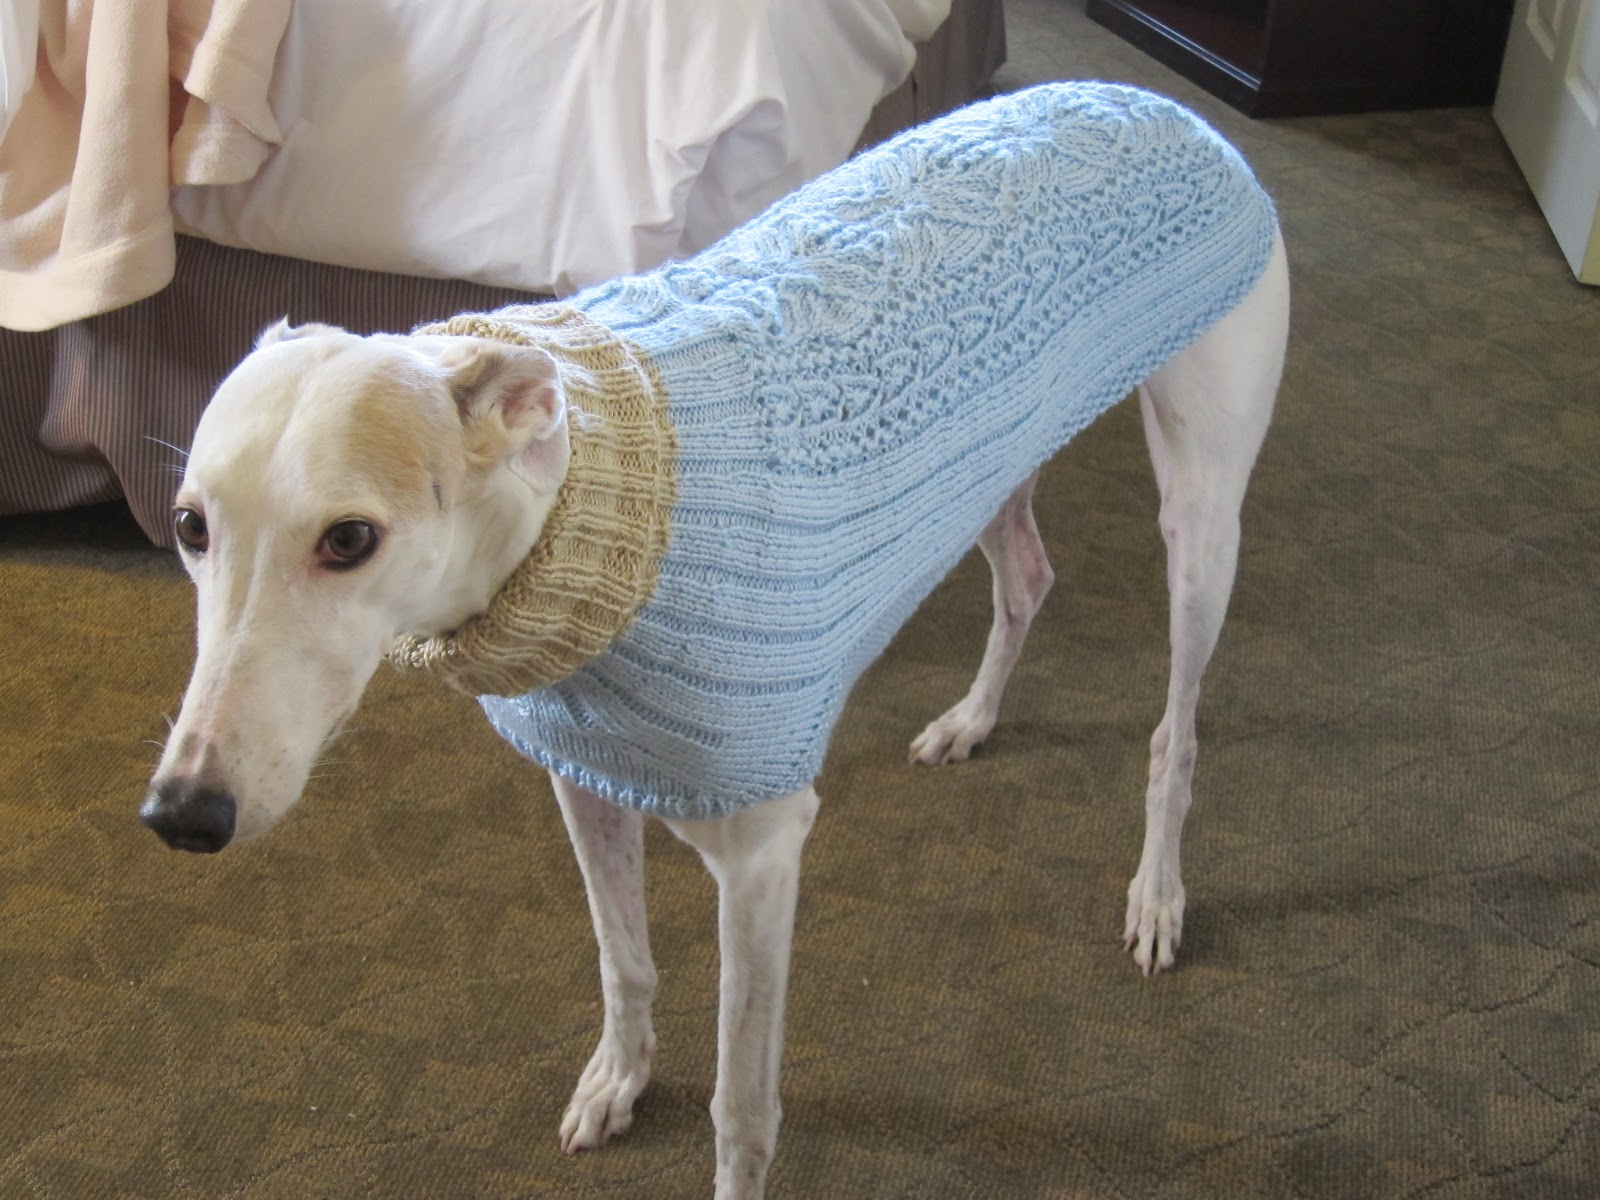 Knitting Patterns For Greyhound Sweaters : Greyhound Knit Sweaters: Donation coat